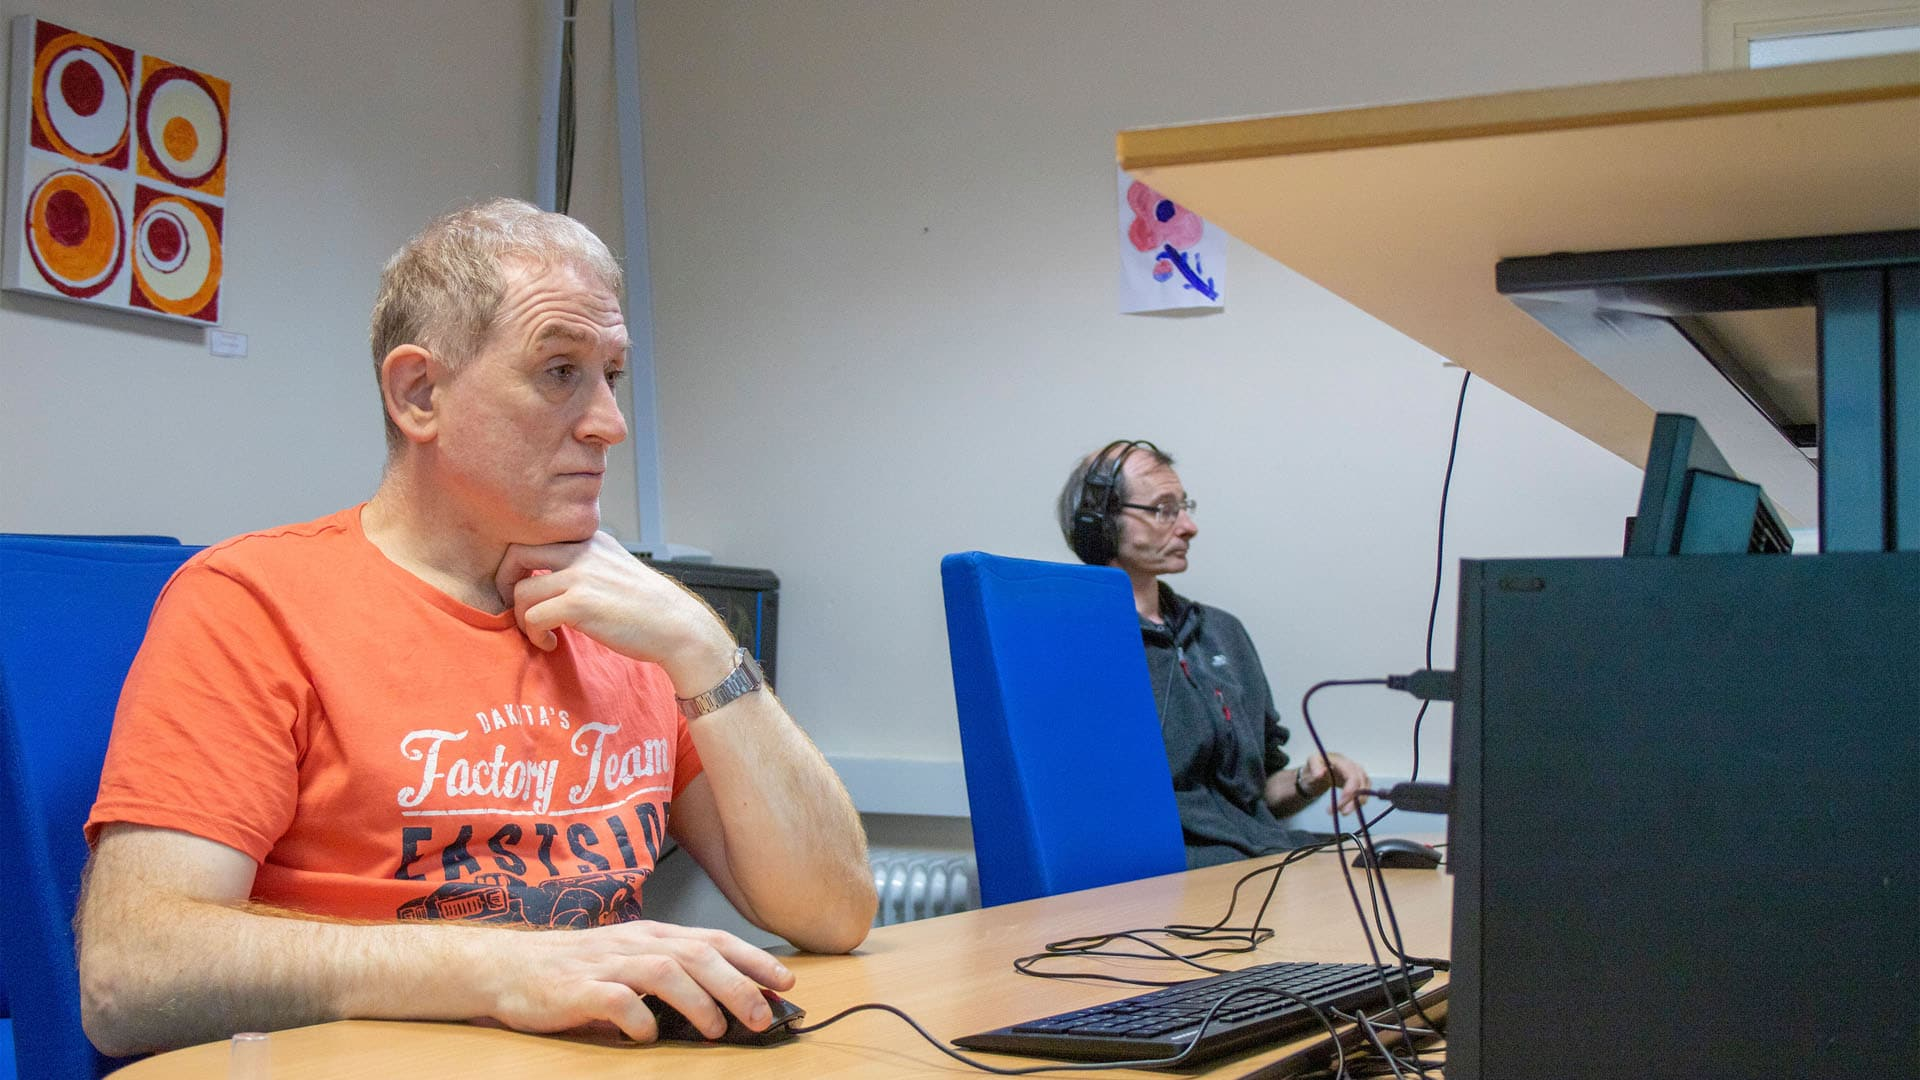 Two service users on PCs